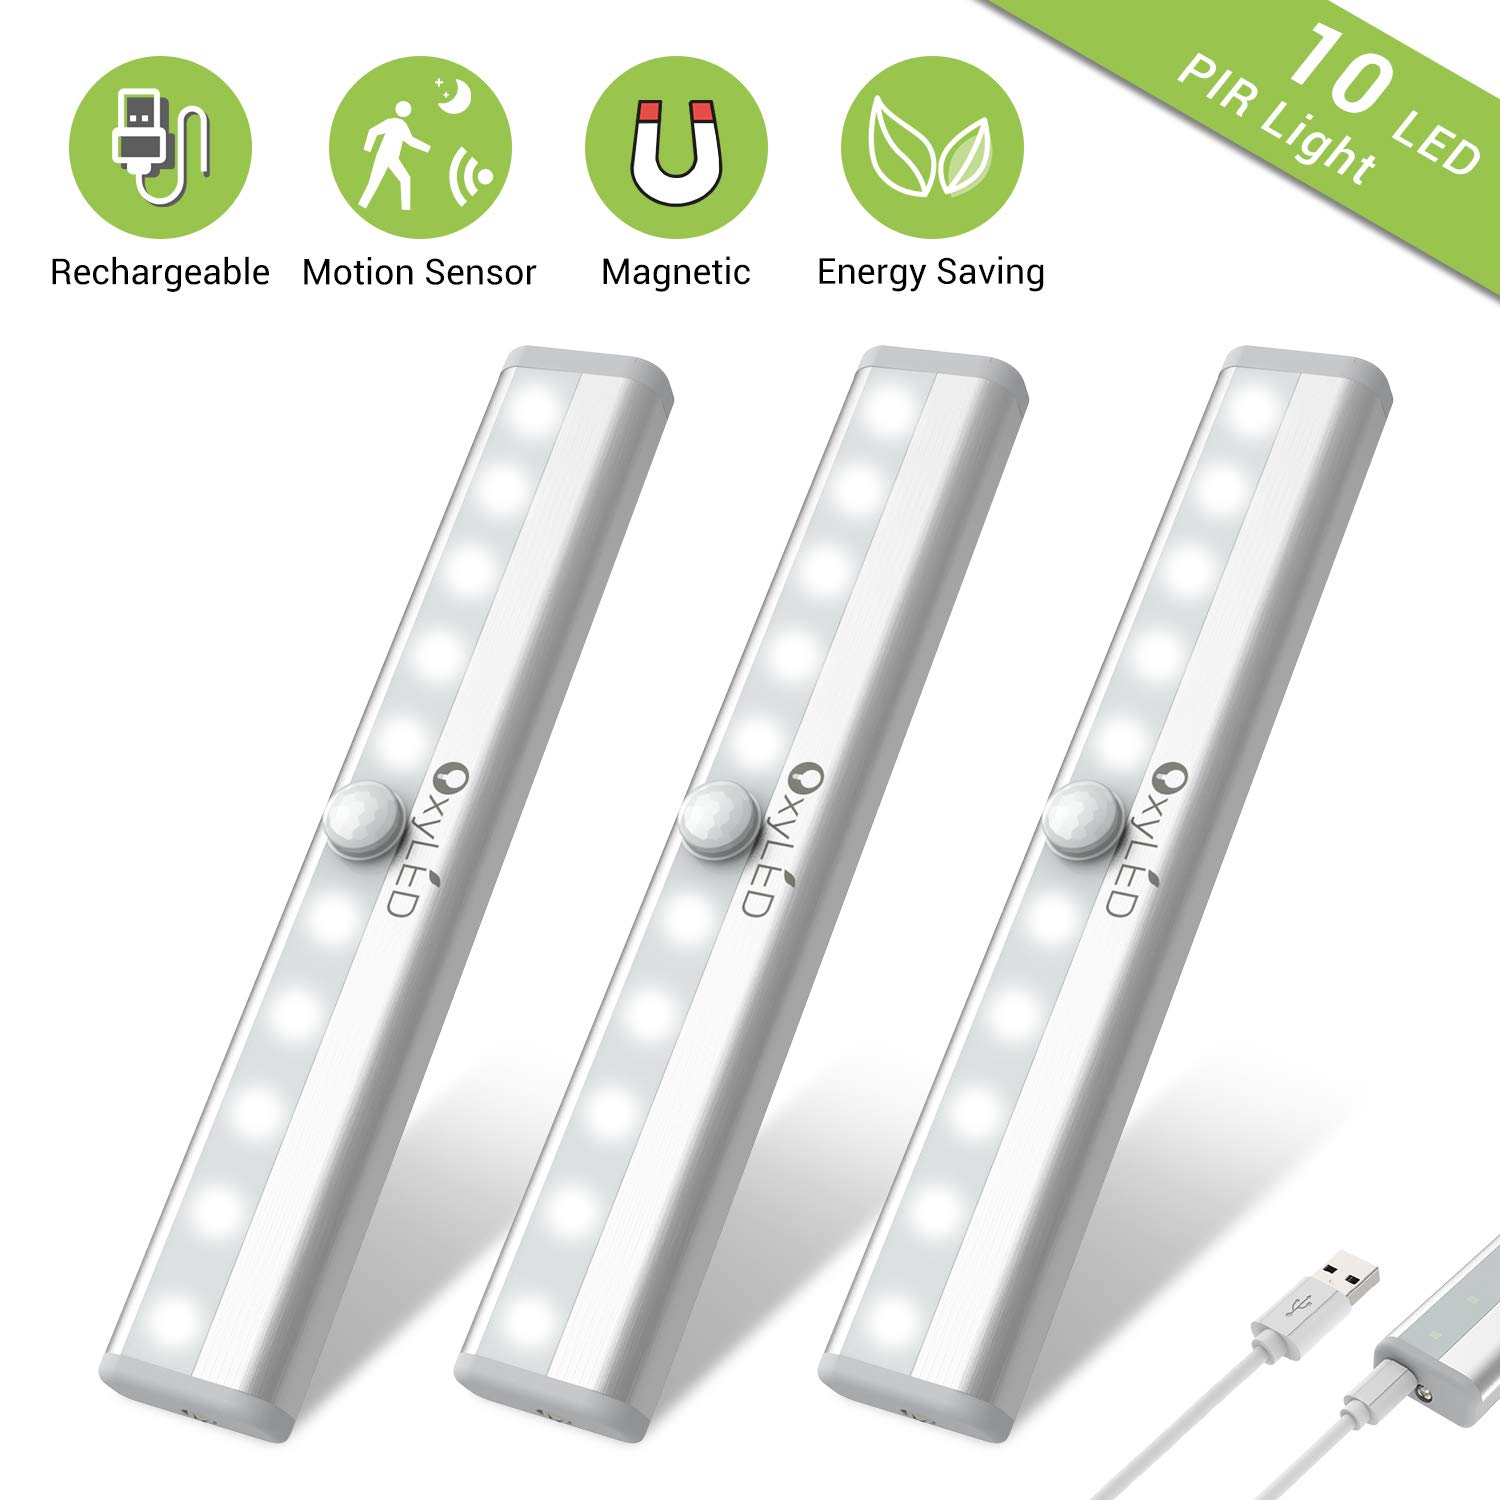 Under Cabinet Lighting, OxyLED USB Rechargeable Motion Sensor Closet Lights, Wireless Magnetic Stick-on Cordless 10 LED Night Light Bar for Closet Cabinet Wardrobe Stairs, 3 Pack by OxyLED